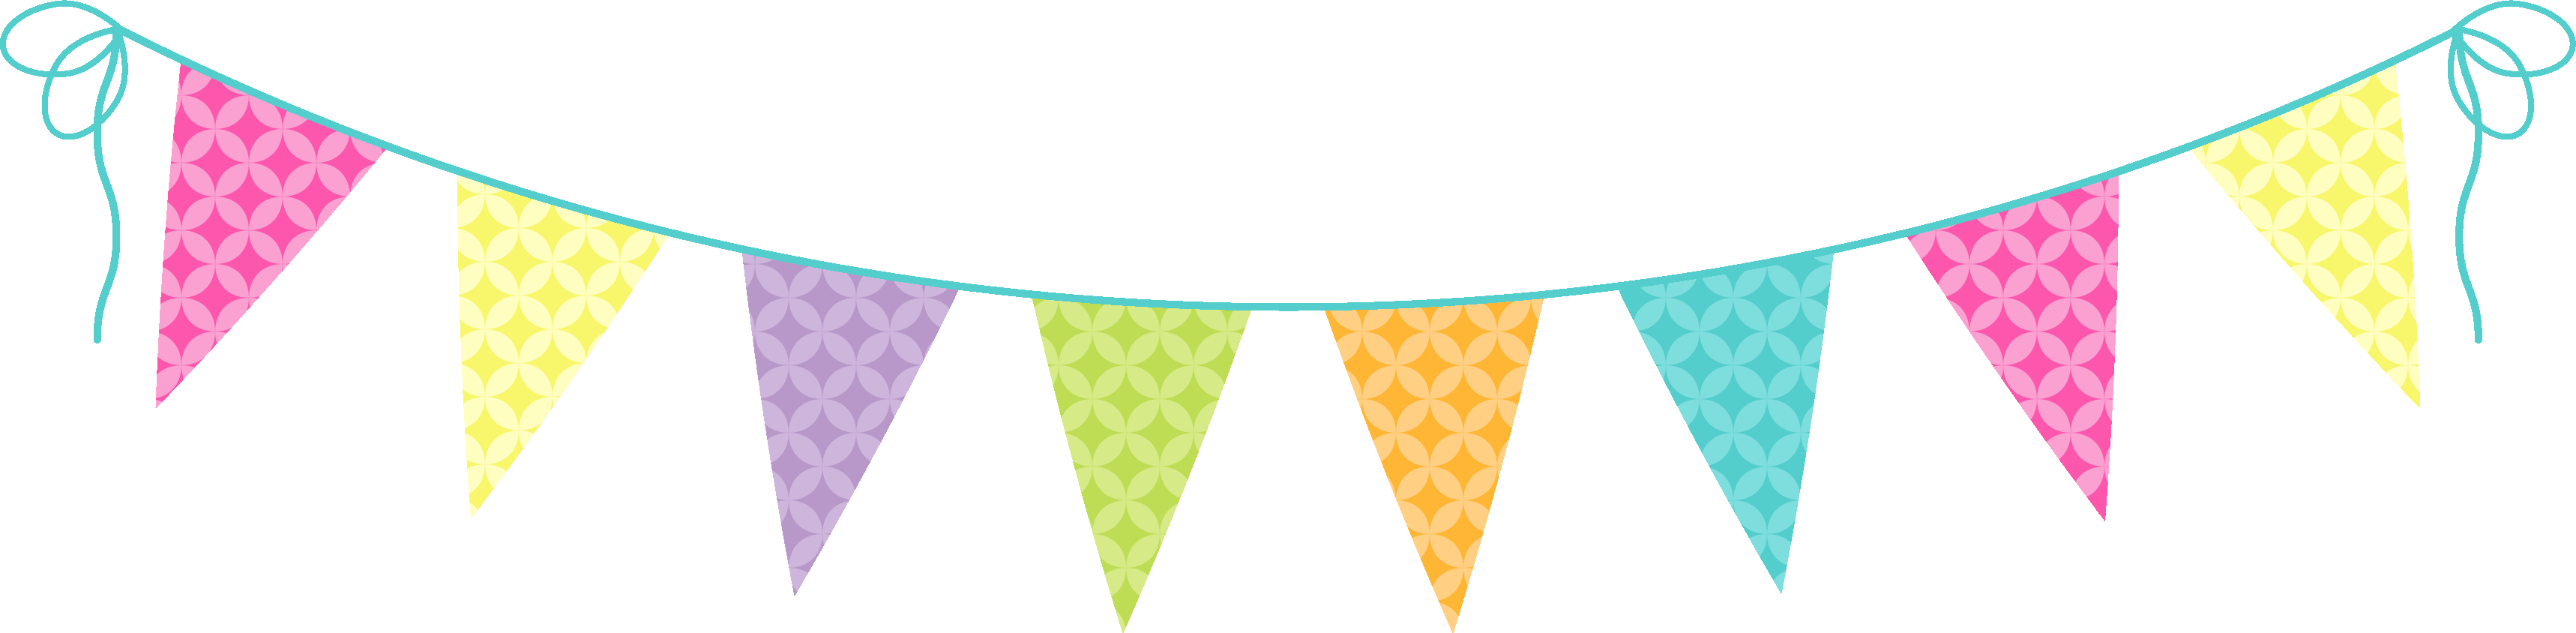 Baby celebration banner clipart graphic library library Fiesta Banners | Free download best Fiesta Banners on ClipArtMag.com graphic library library